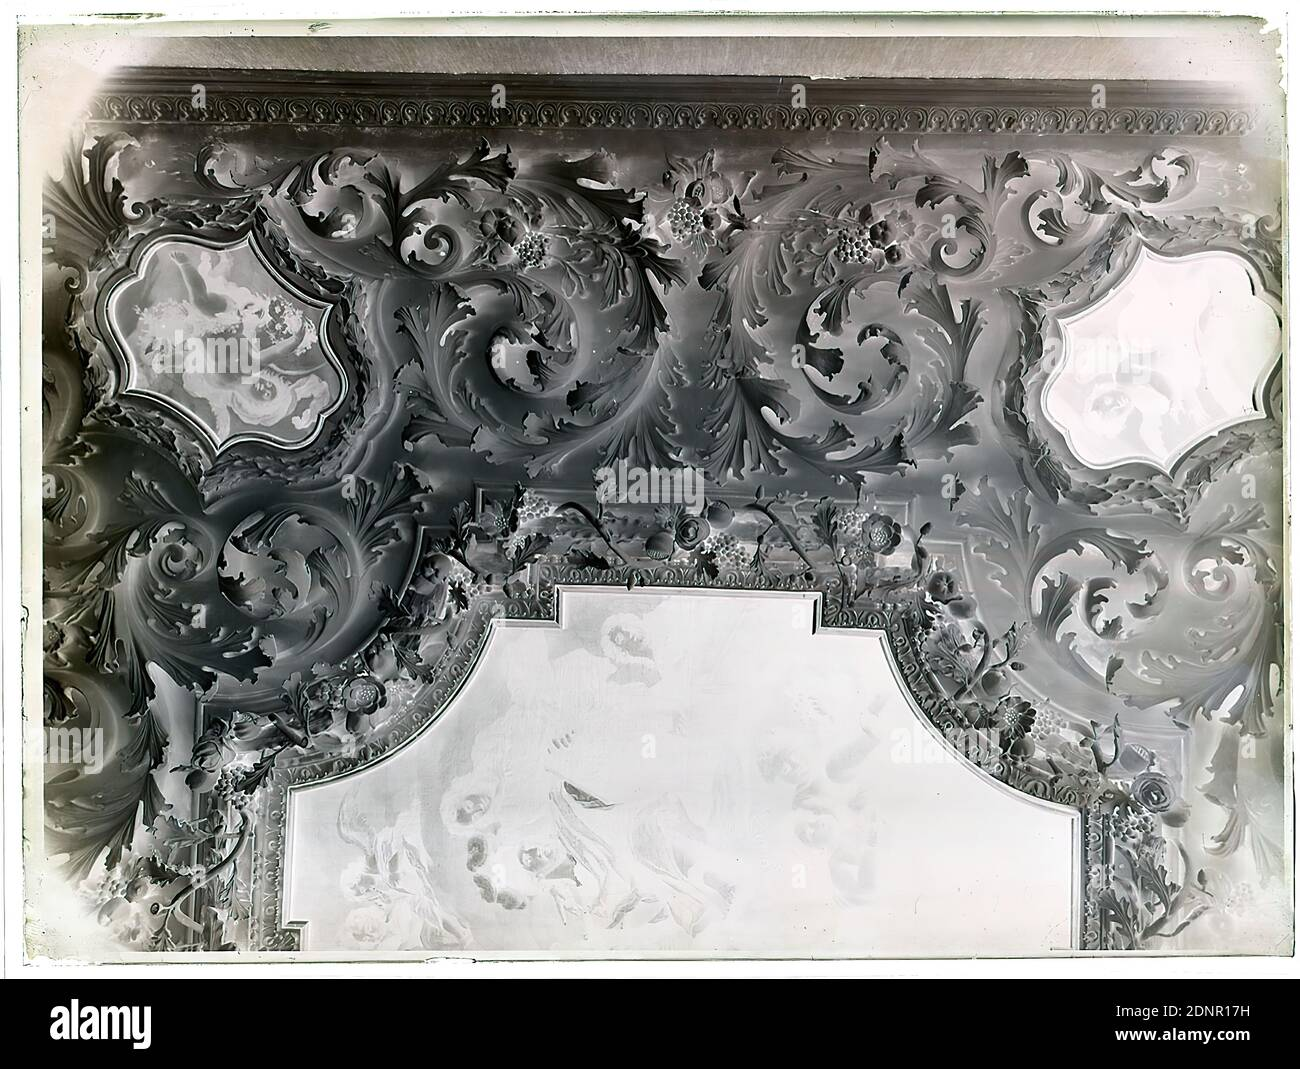 Stucco Ceiling High Resolution Stock Photography And Images Alamy